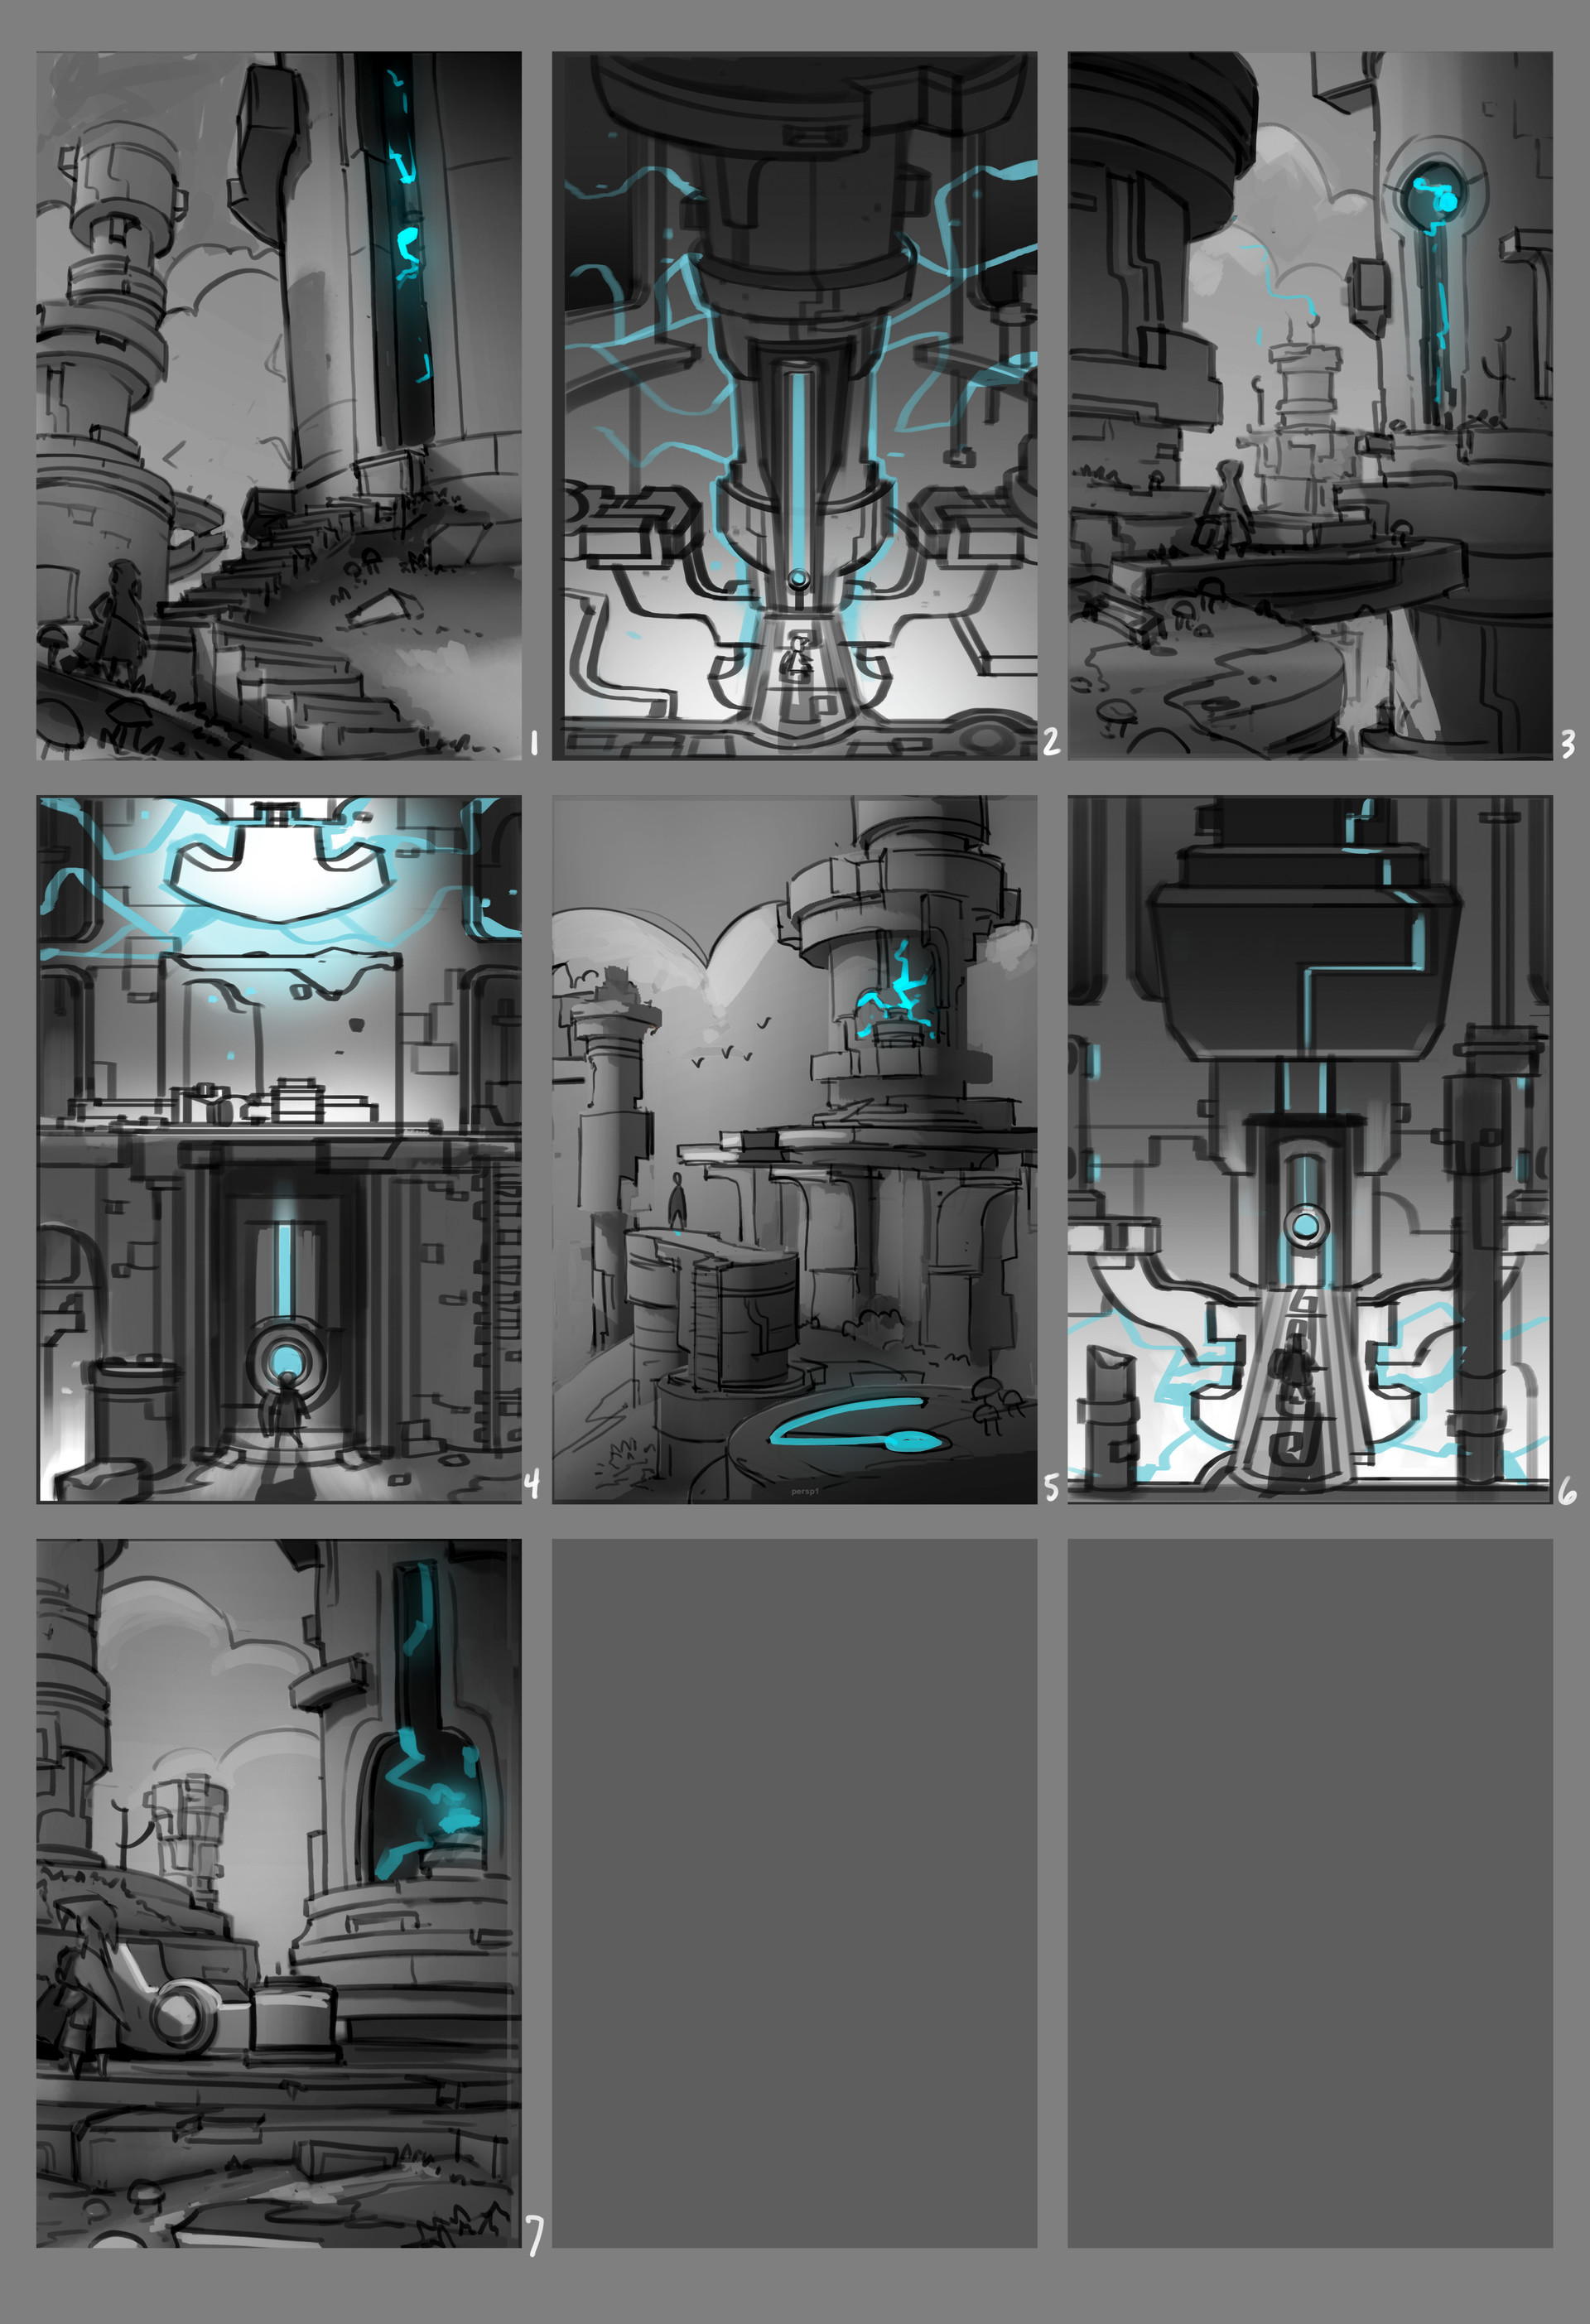 Thumbnails by Tim Kaminski and Jason Rumpff